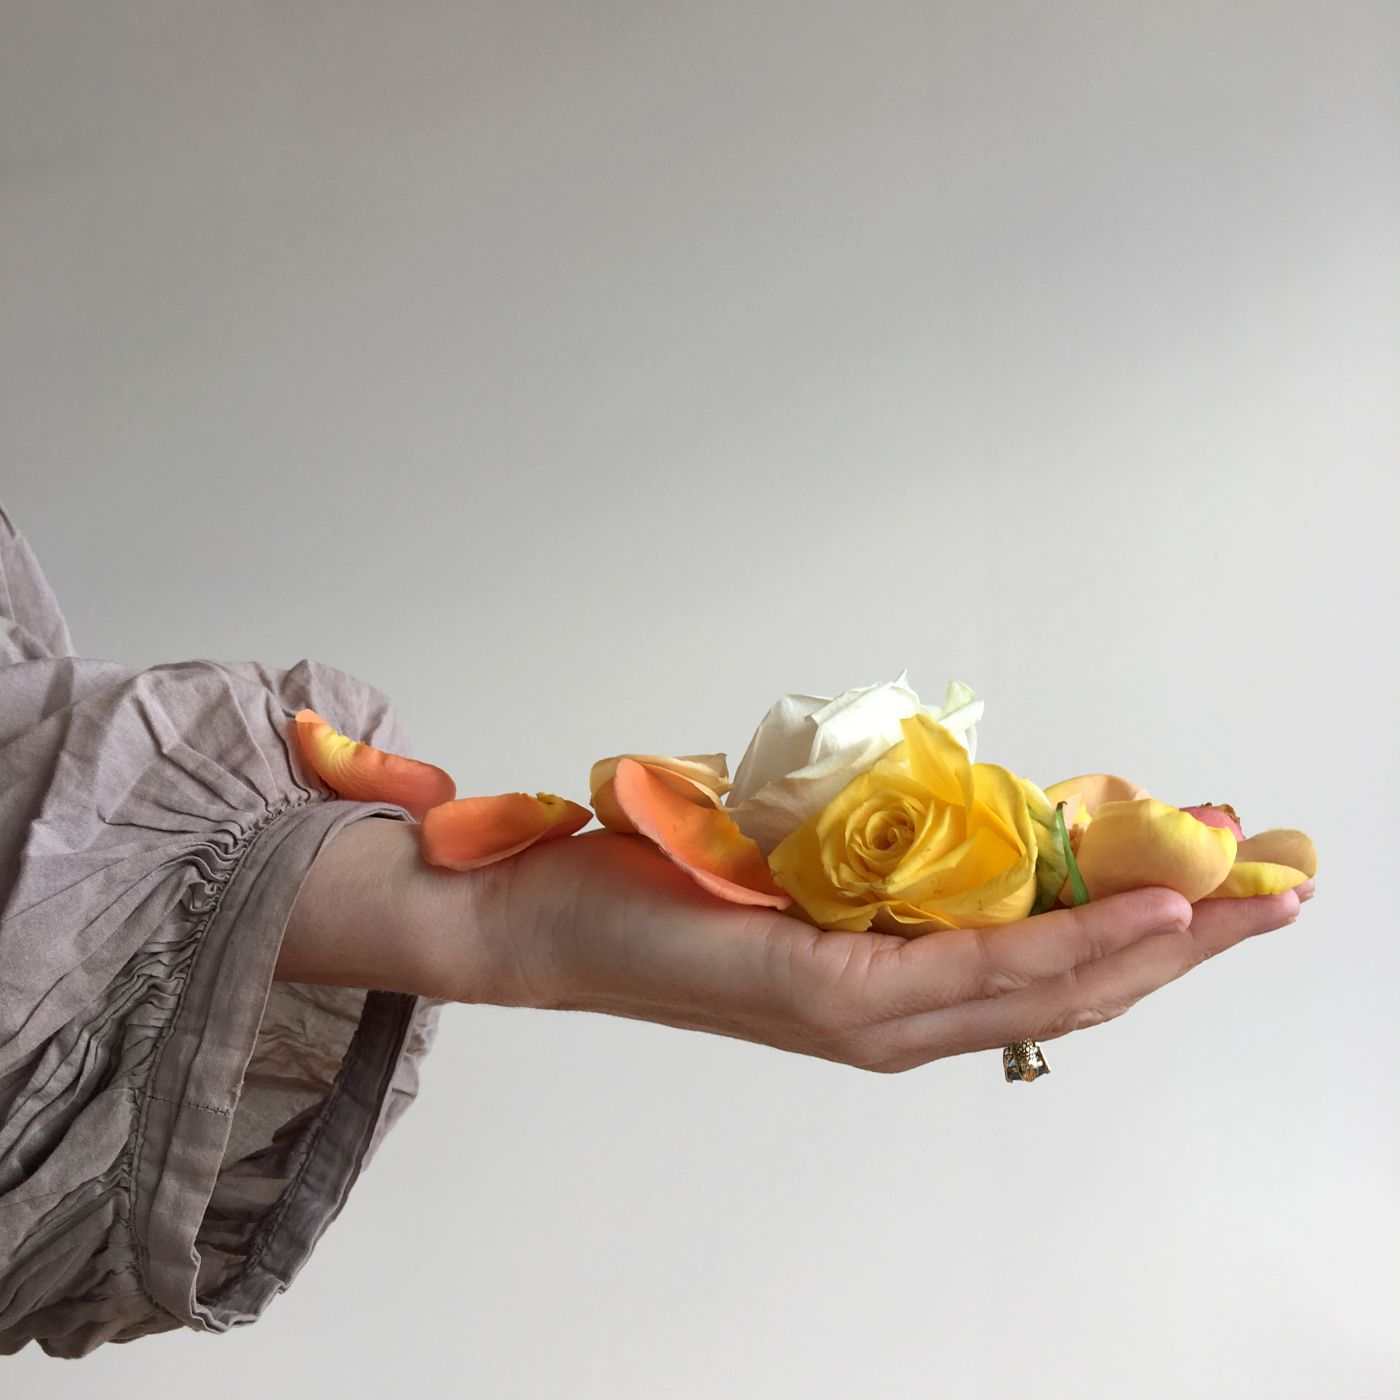 A hand holding yelow orange and white rose petals